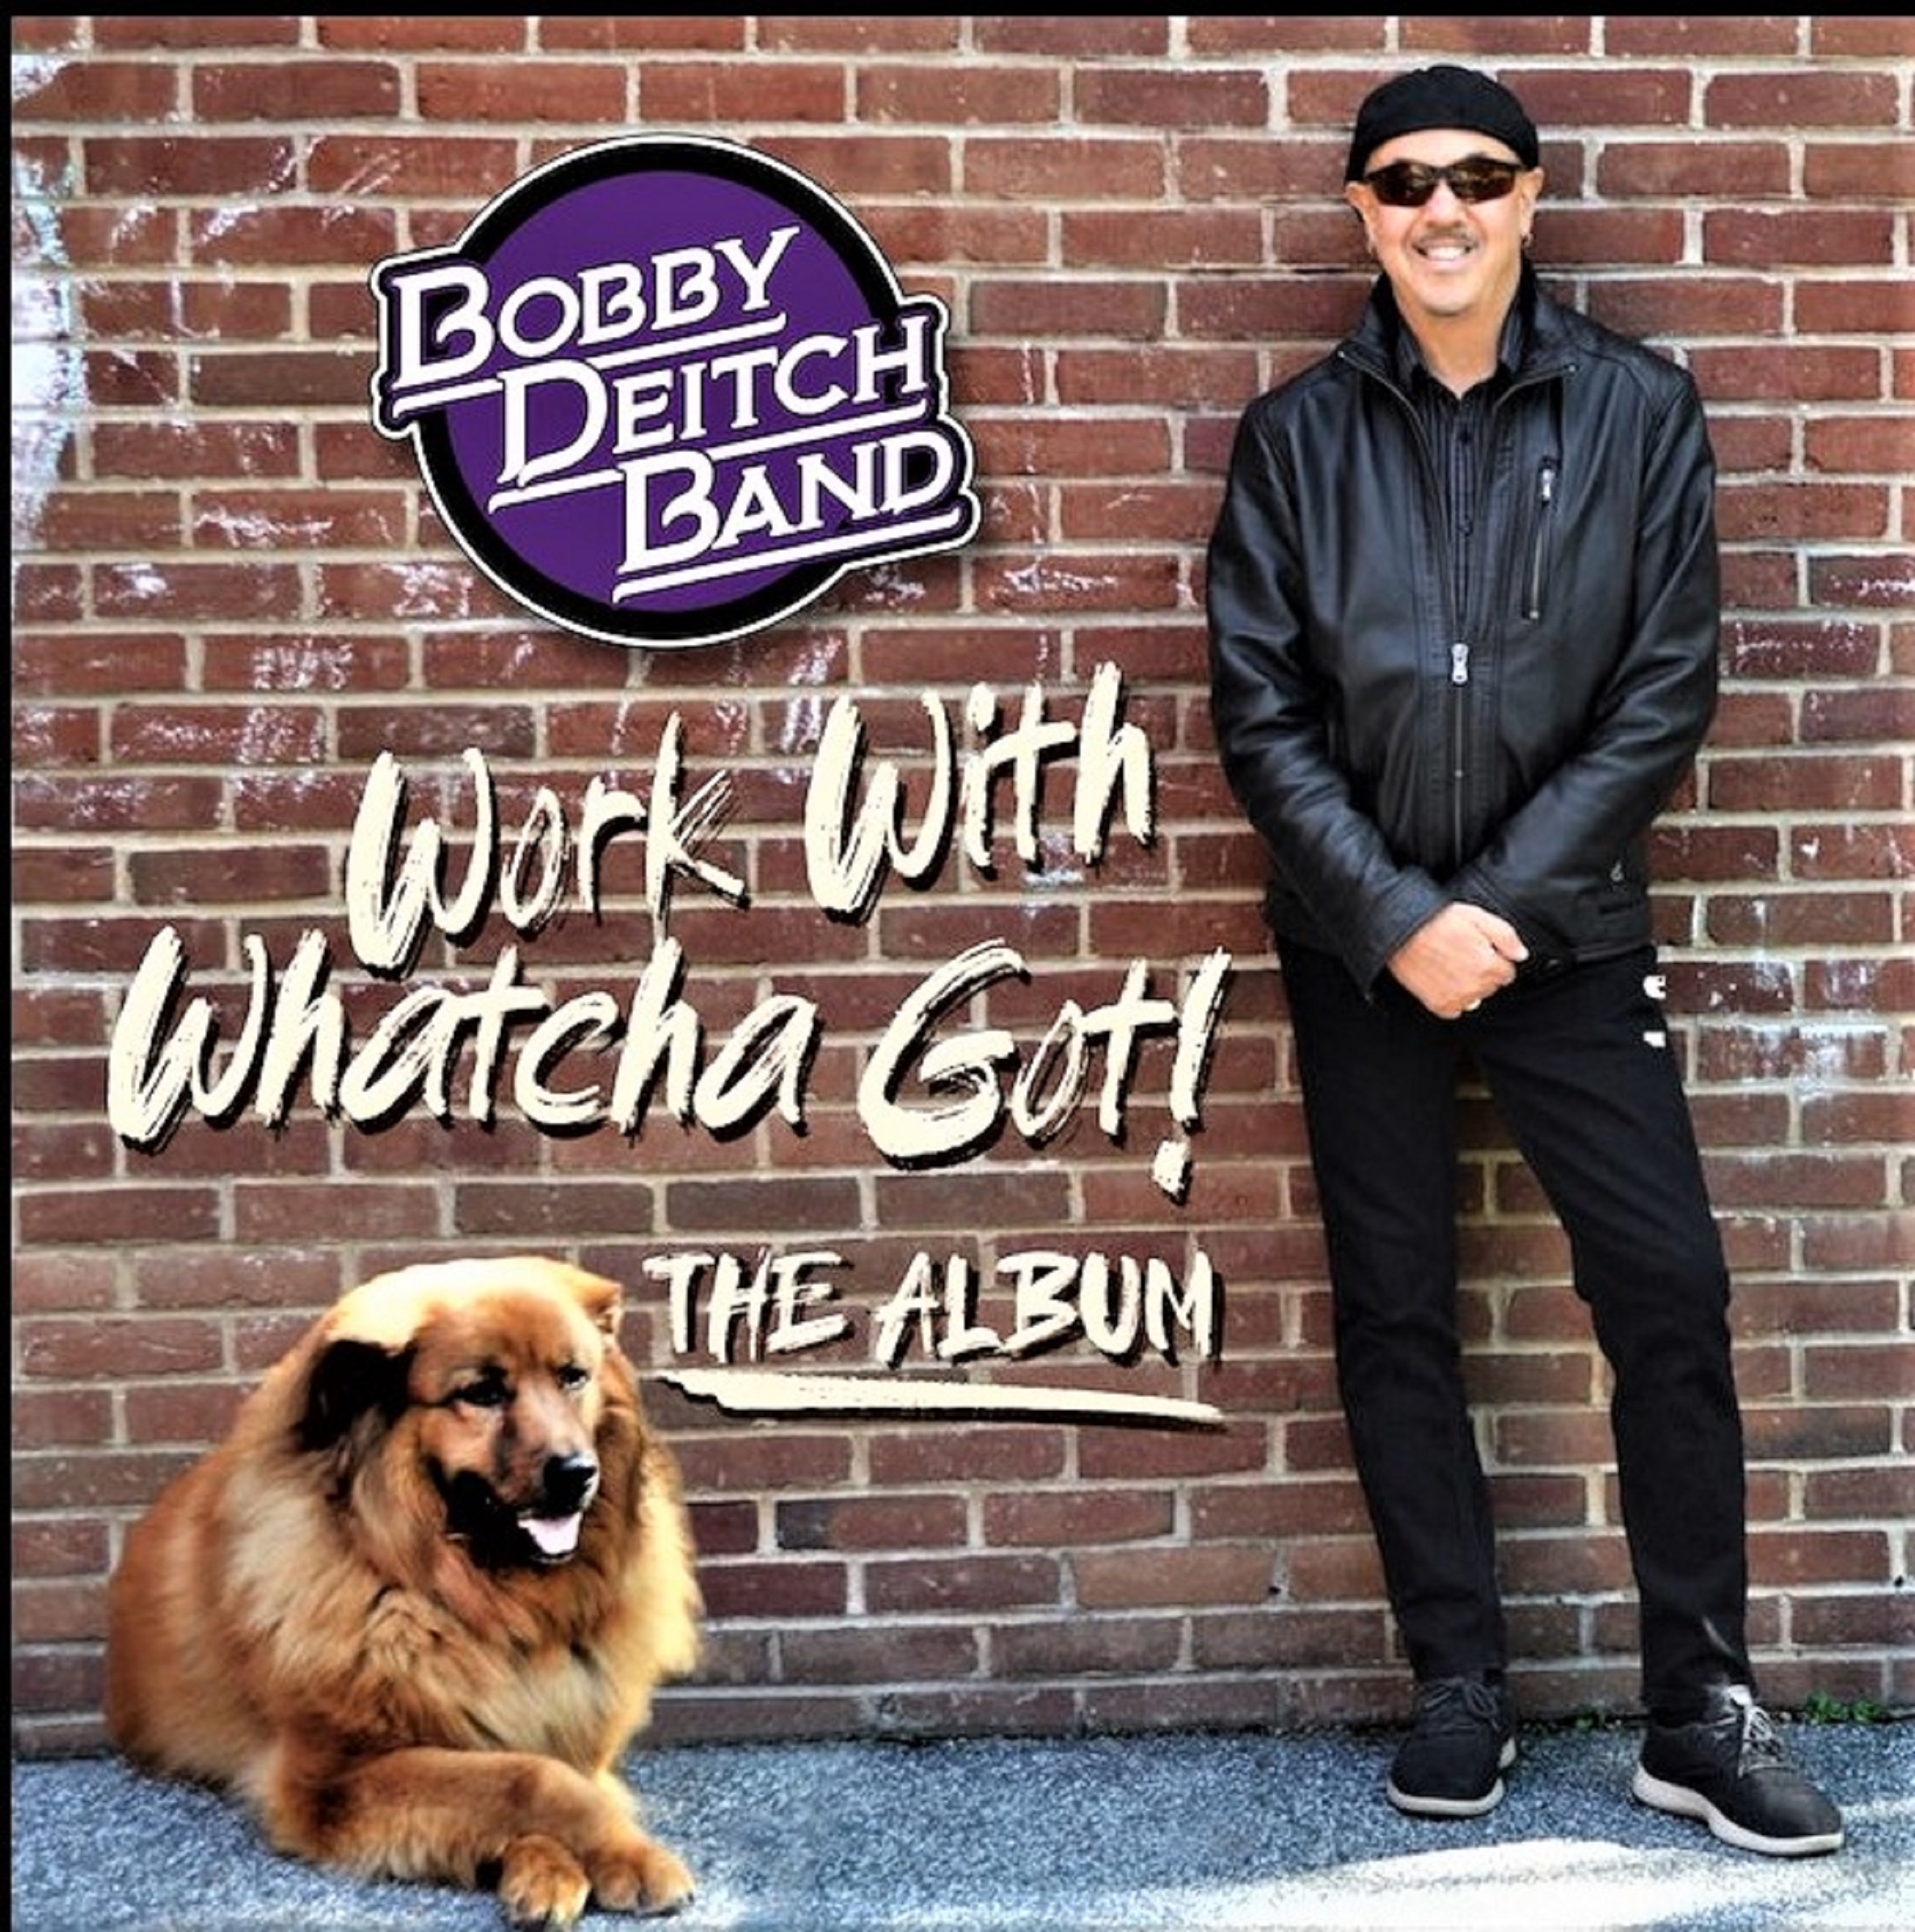 Bobby Deitch Band's Work With Whatcha Got! Out Now